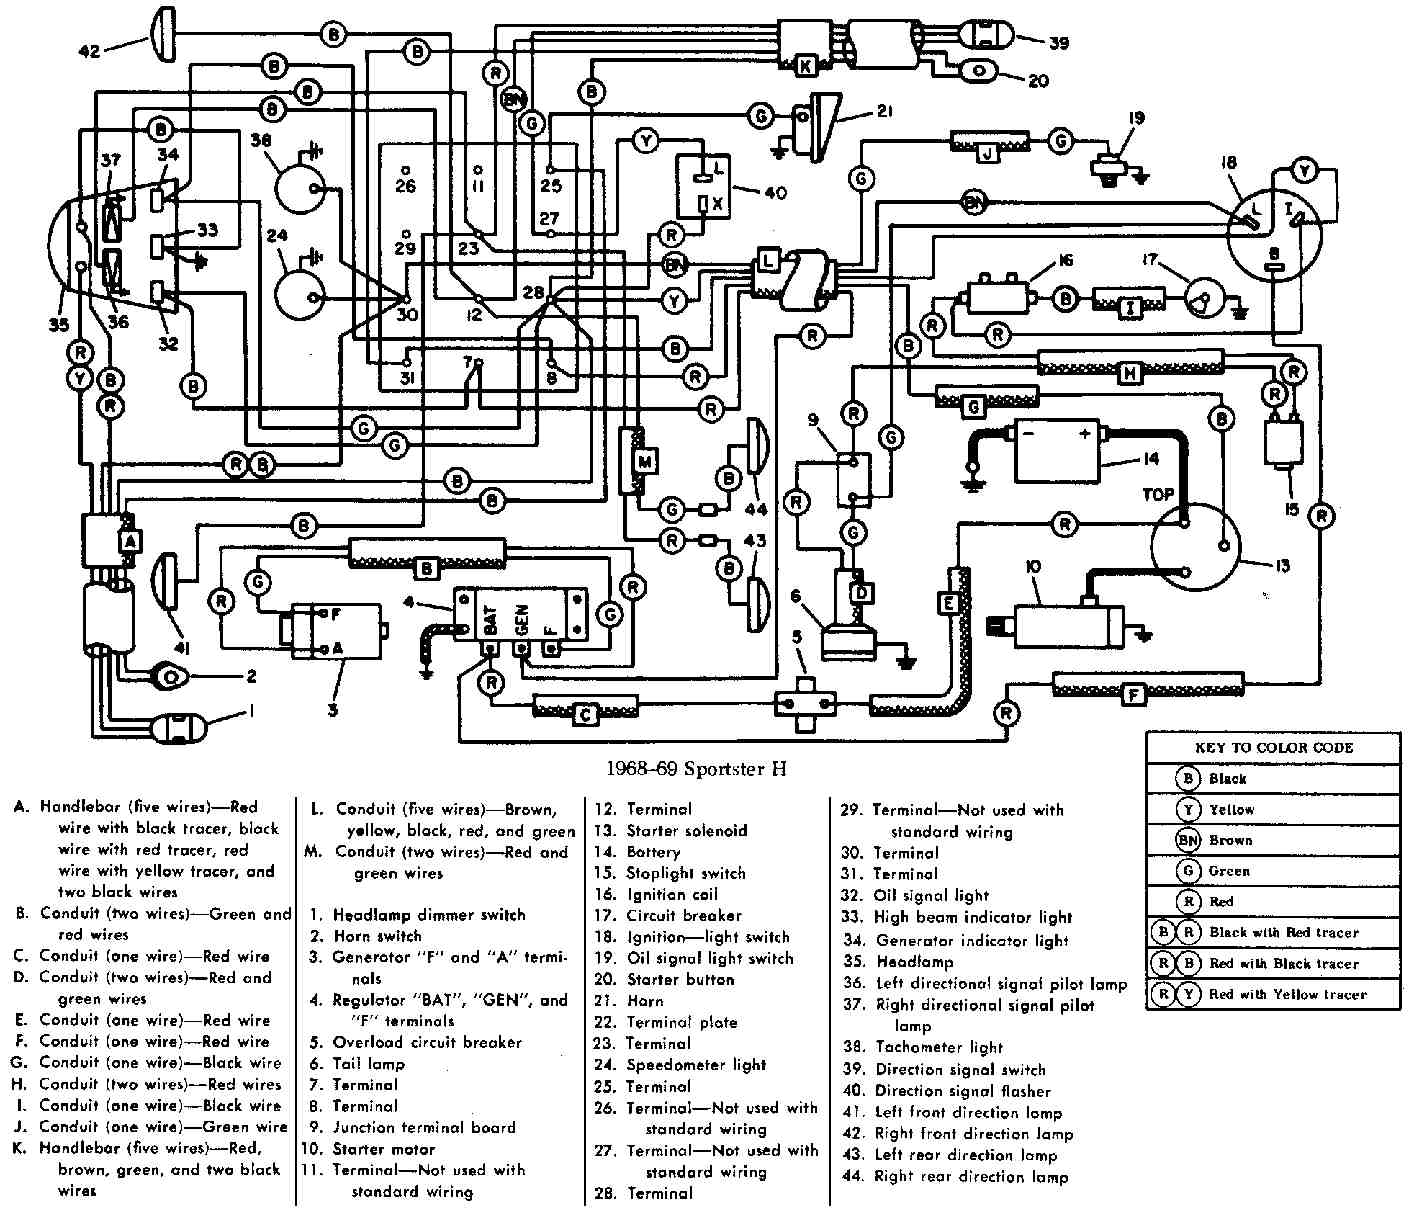 wiring diagram for 1985 ford mustang pdf with Harley Davidson Sportster 1968 1969 on P 0900c15280045126 also Index11 in addition Grounding Wire Location Help Please 10069 moreover 1967 Mustang Wiring And Vacuum Diagrams likewise 1983 1988 Ford Bronco Ii Start Ignition.